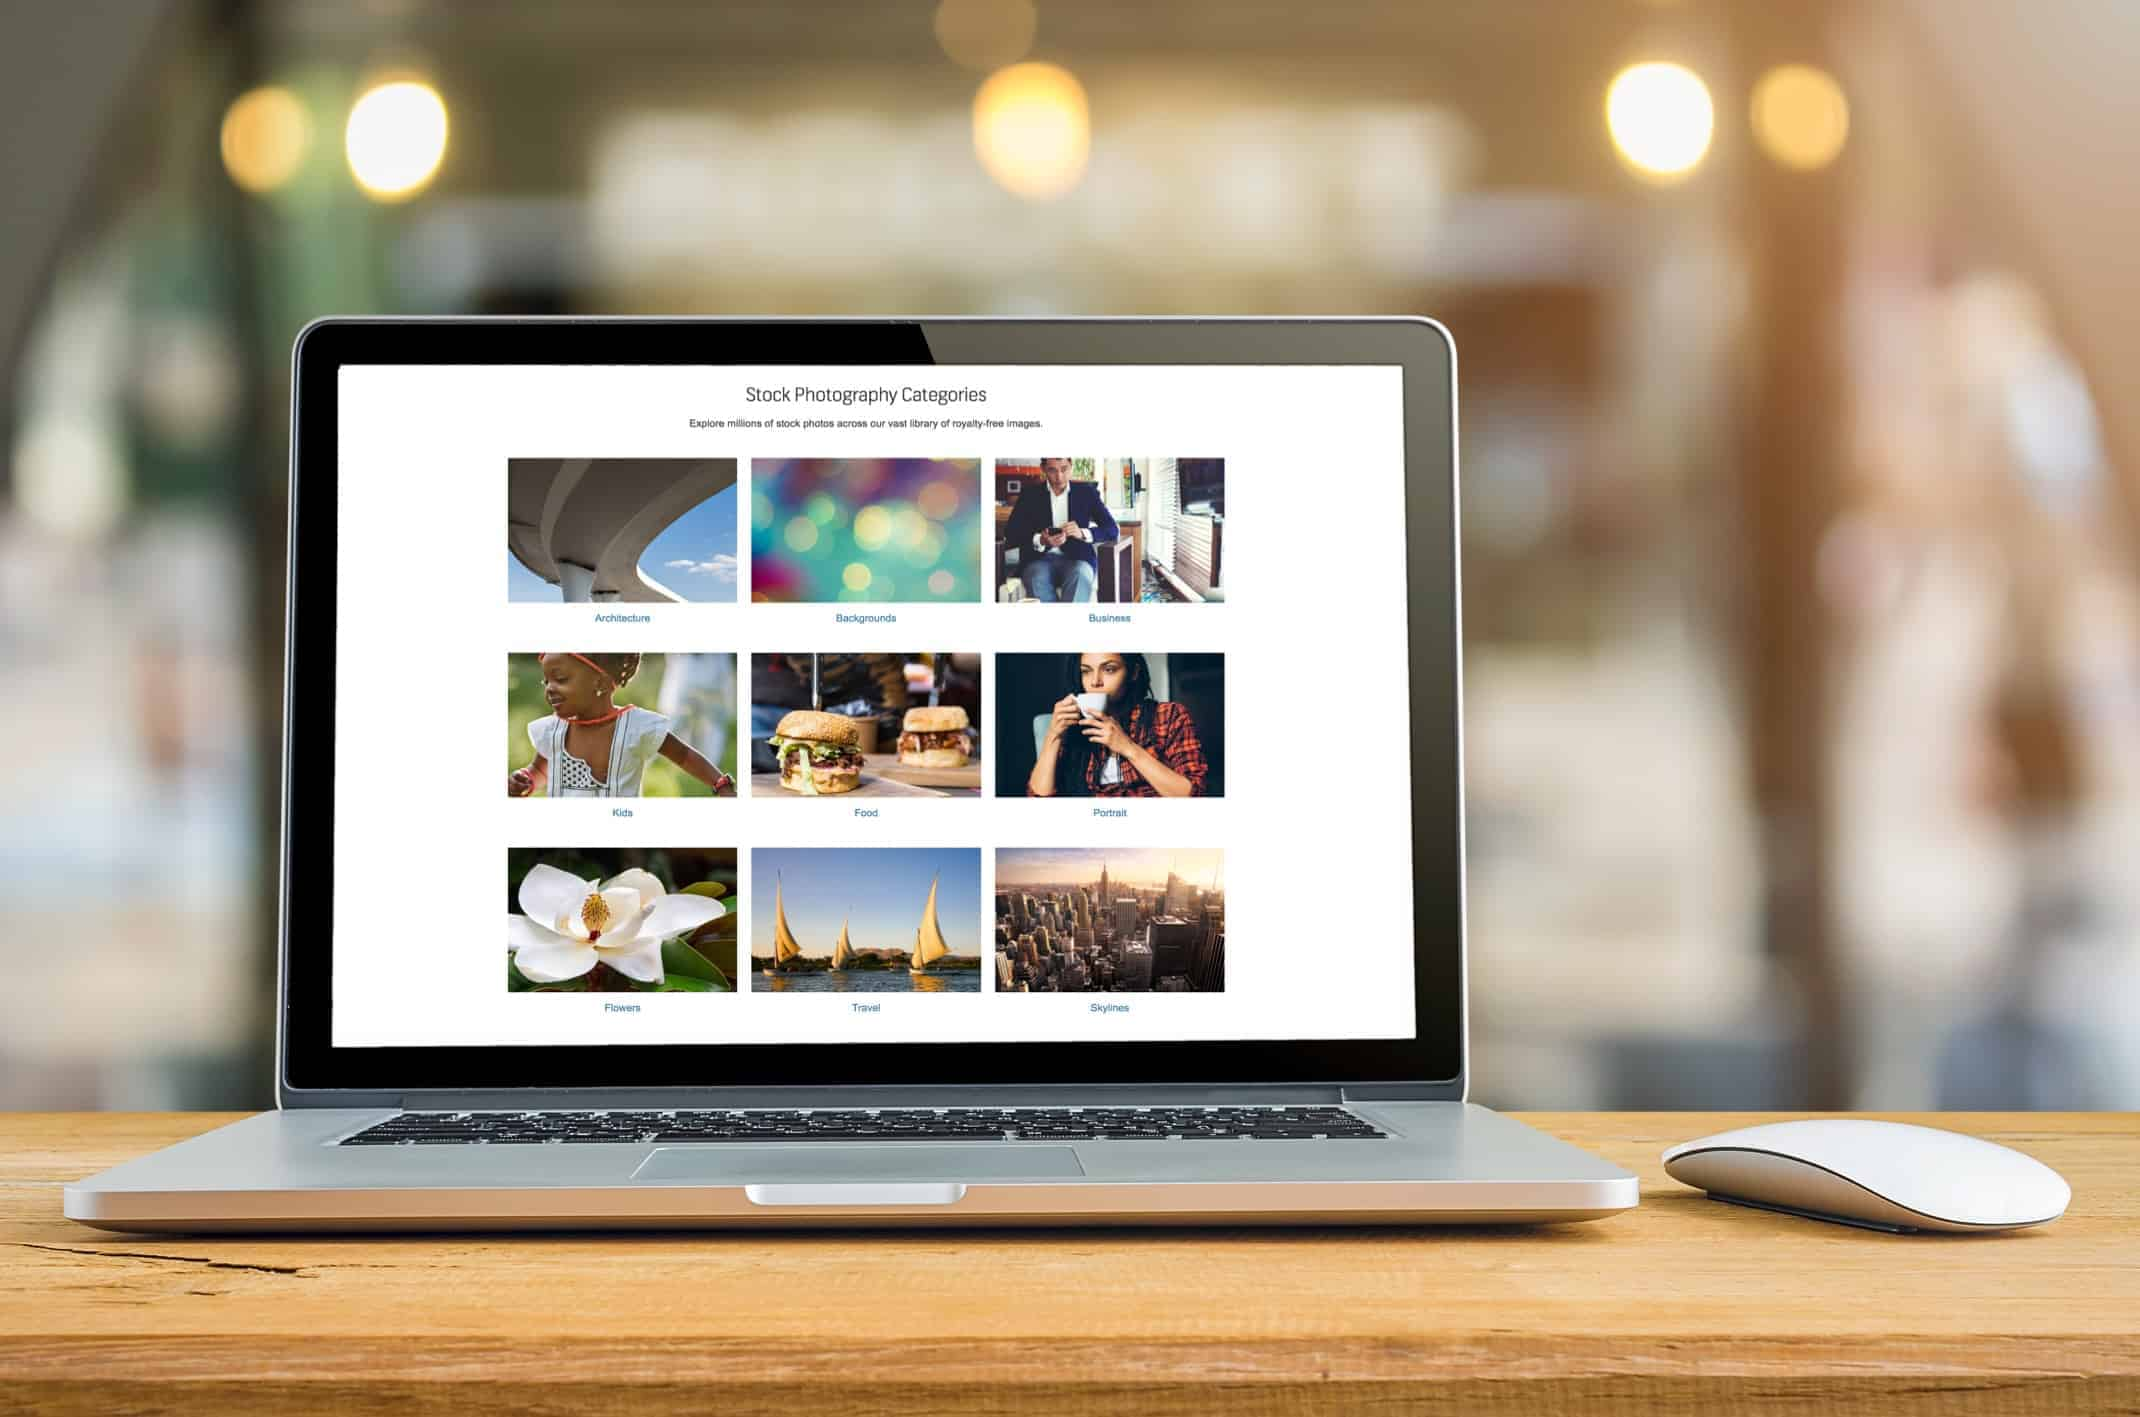 The Best Stock Photo Sites Compared (7 Primium and 3 Free Options)